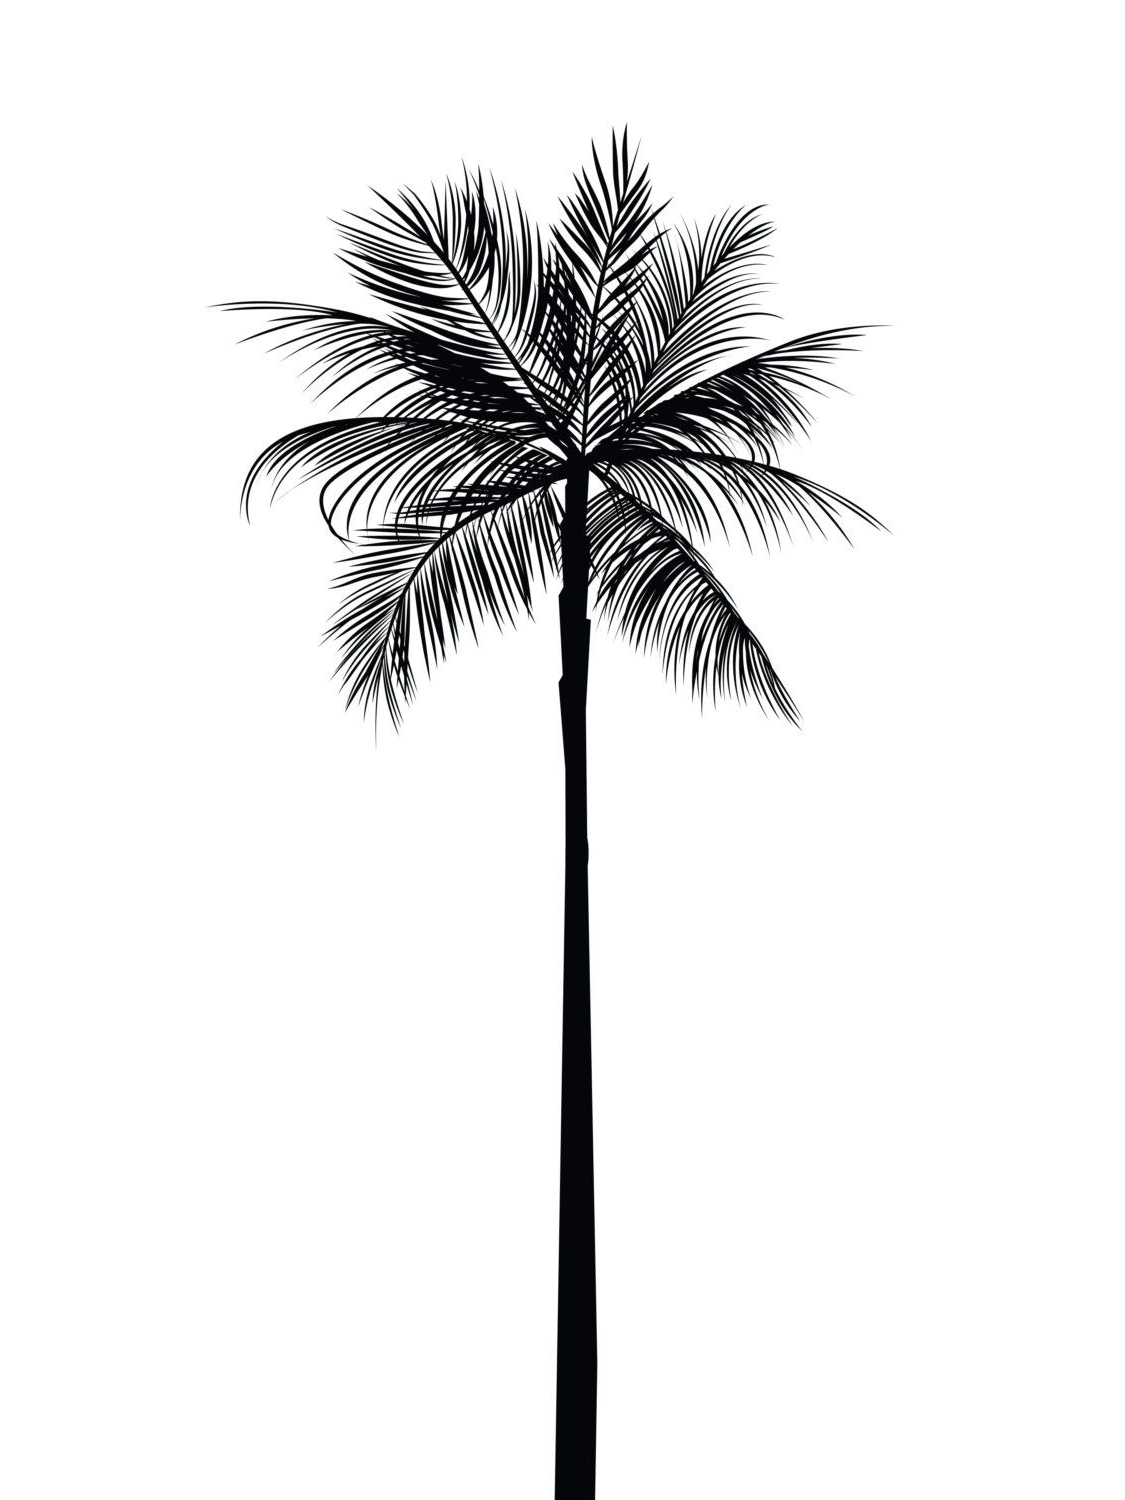 Palm Tree Print, Palm Leaves Print, Palm Tree Art, Palm Tree Wall Regarding Current Palm Tree Wall Art (View 12 of 20)